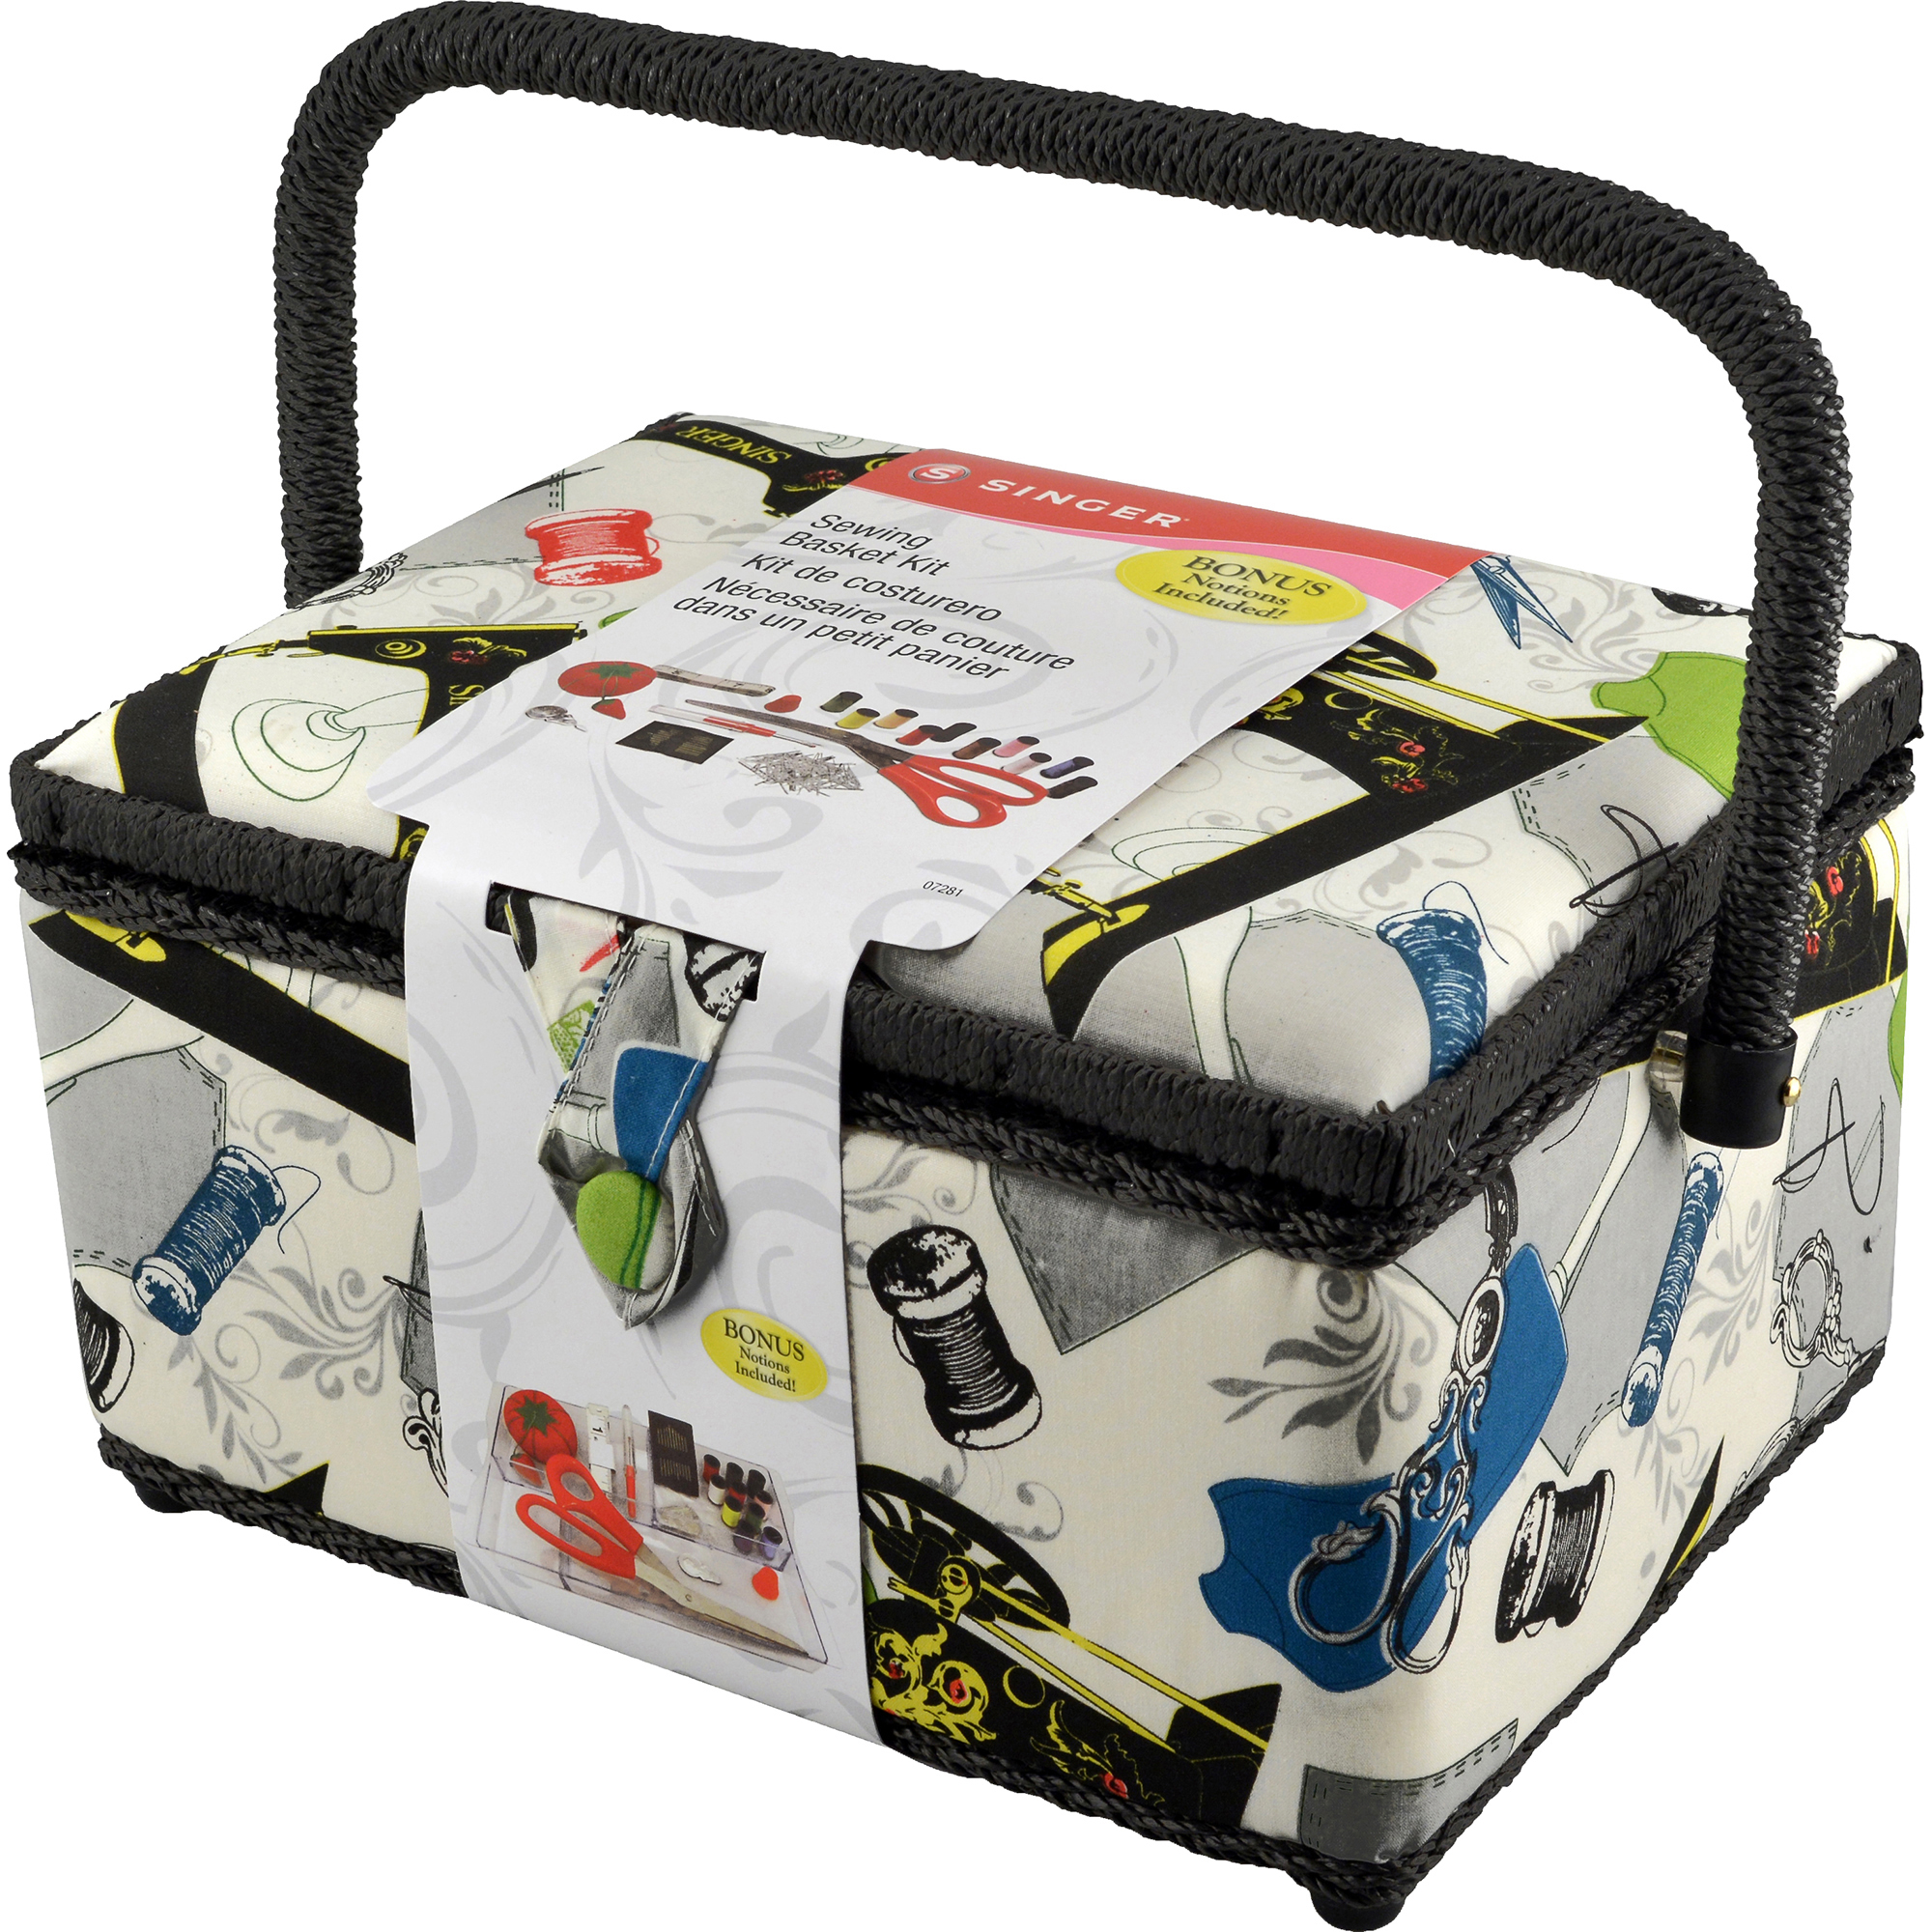 Singer QuiltPro Sewing Basket Kit